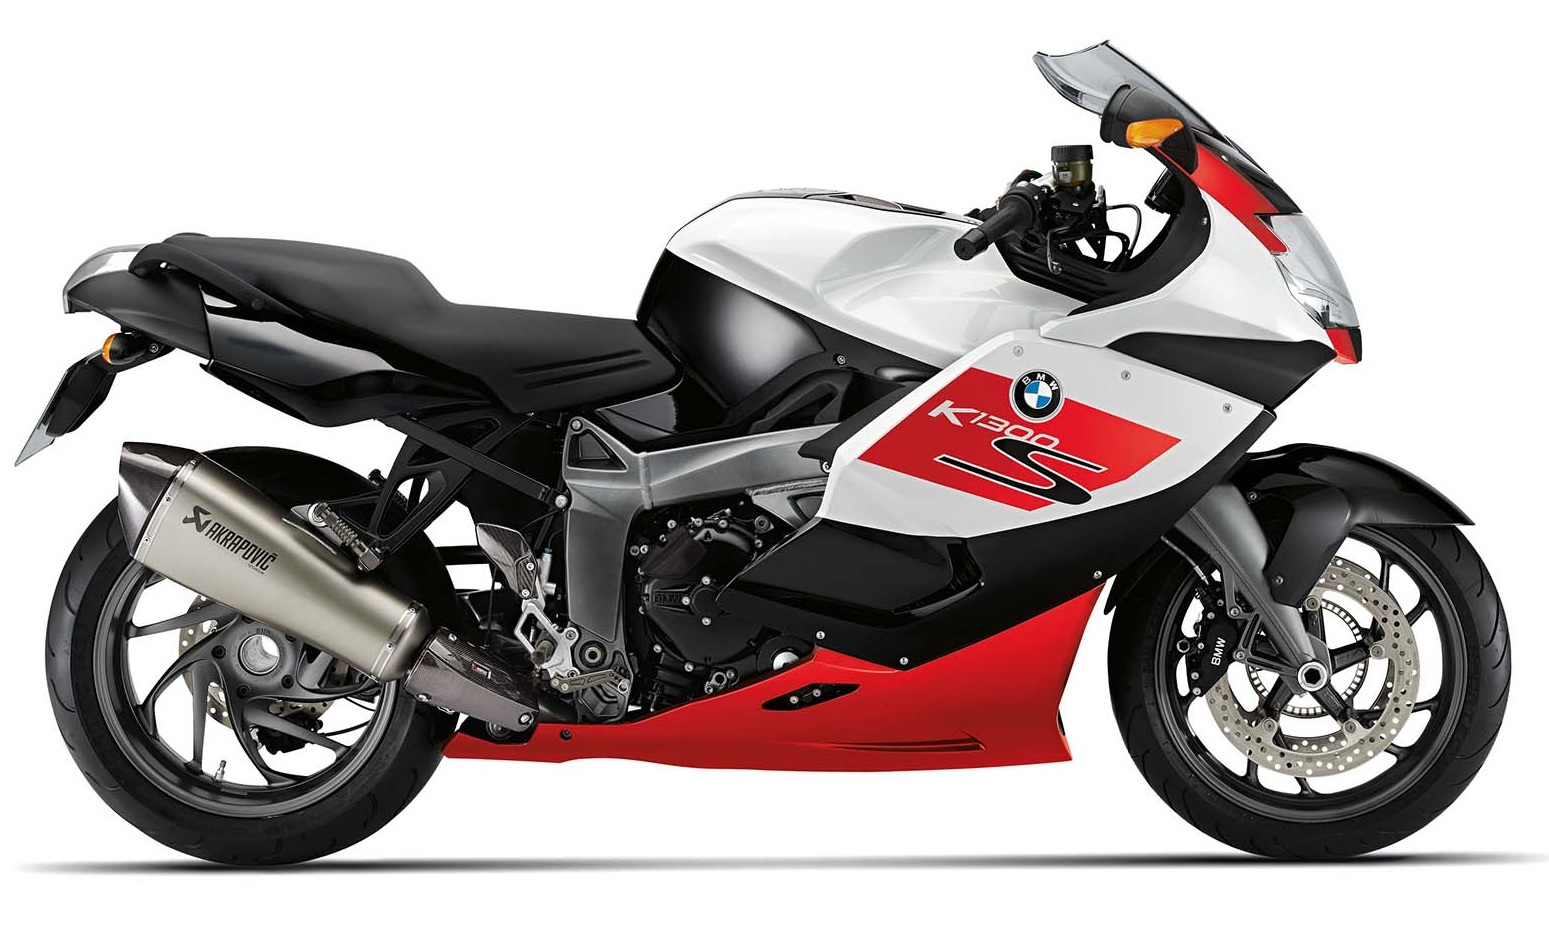 Bmw K1300s Photos Images And Wallpapers Colours